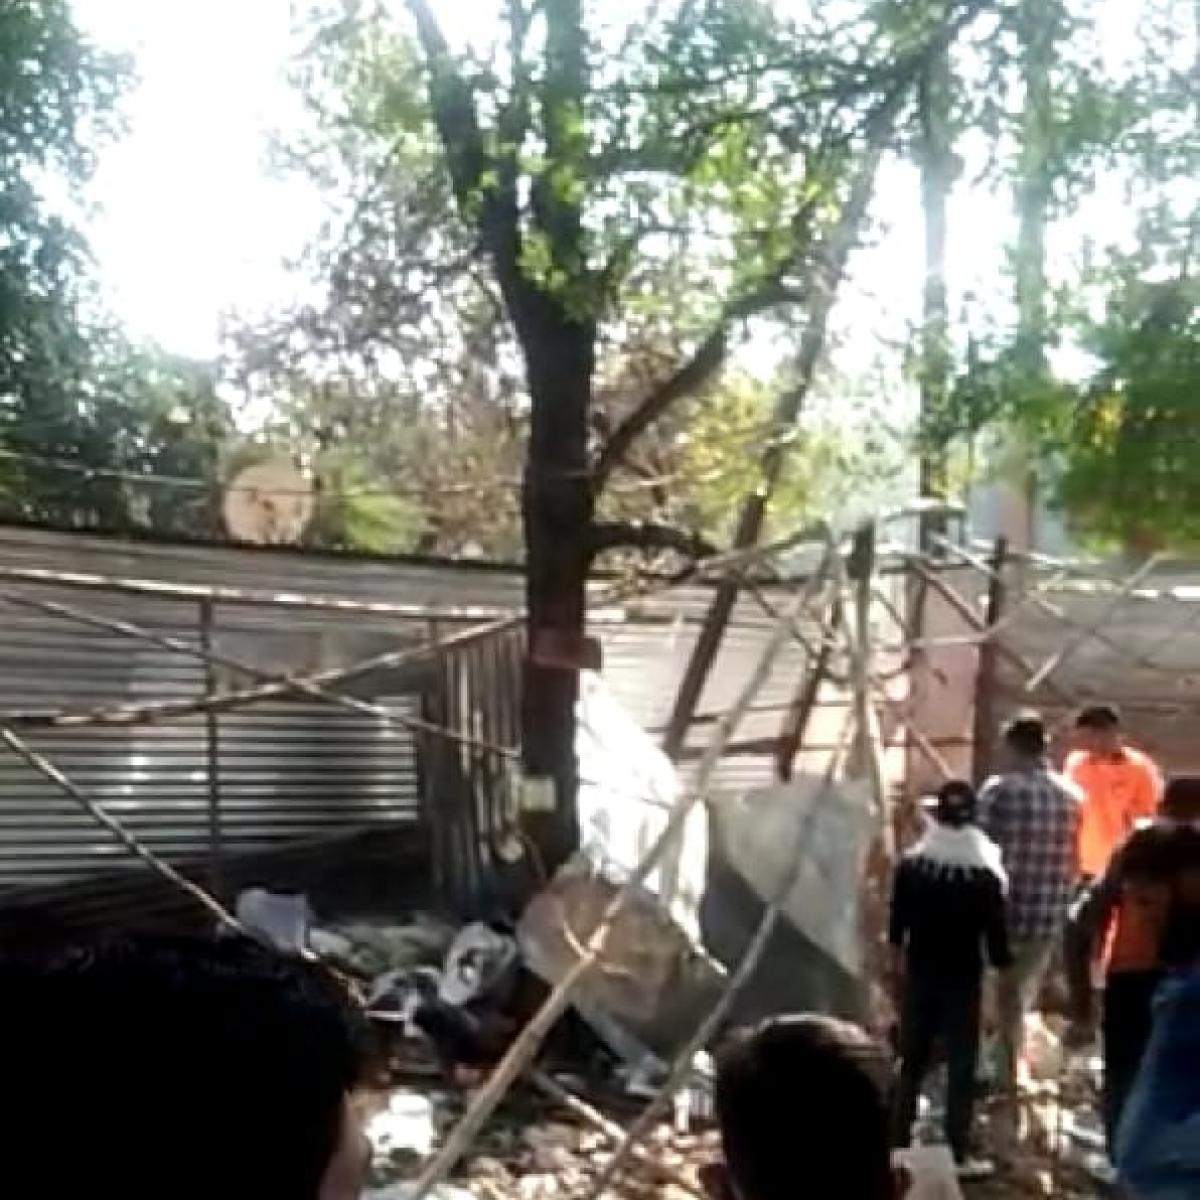 Bhopal: Sandalwood thieves targeting even the VIP zones of state capital